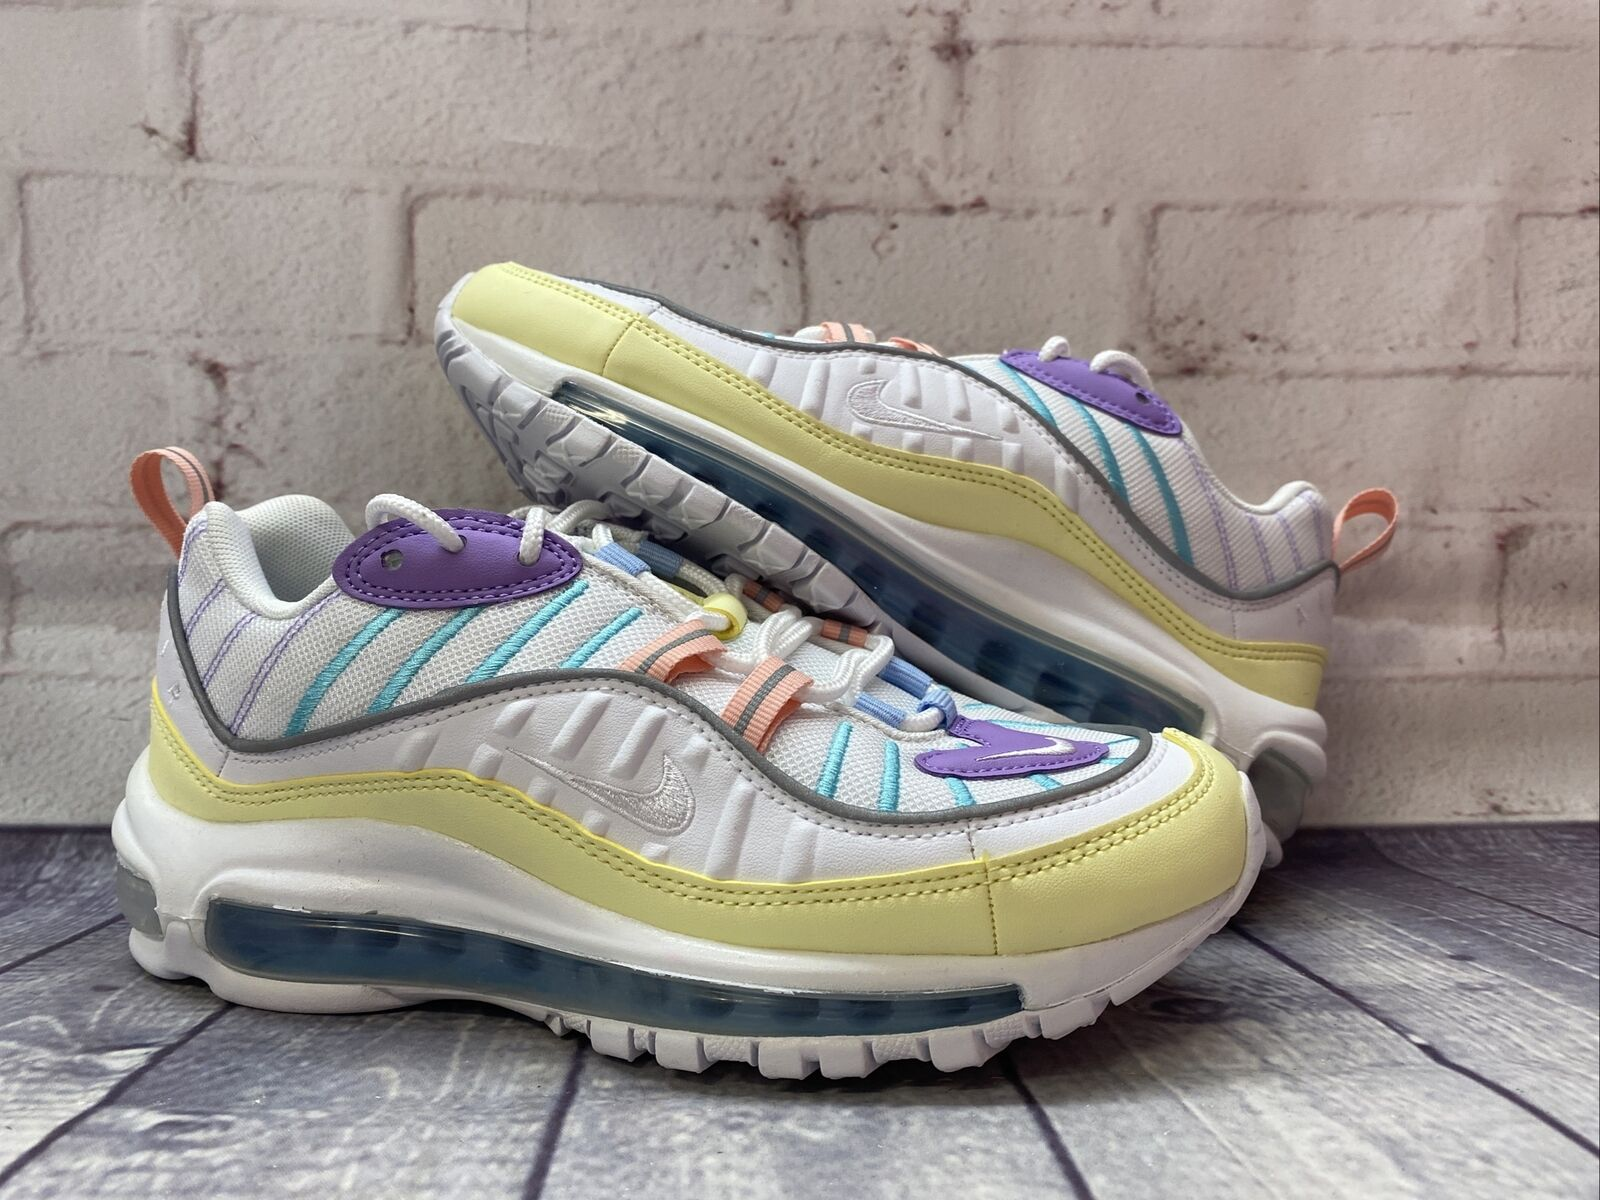 Size 7.5 - Nike Air Max 98 Easter Pastels for sale online   eBay